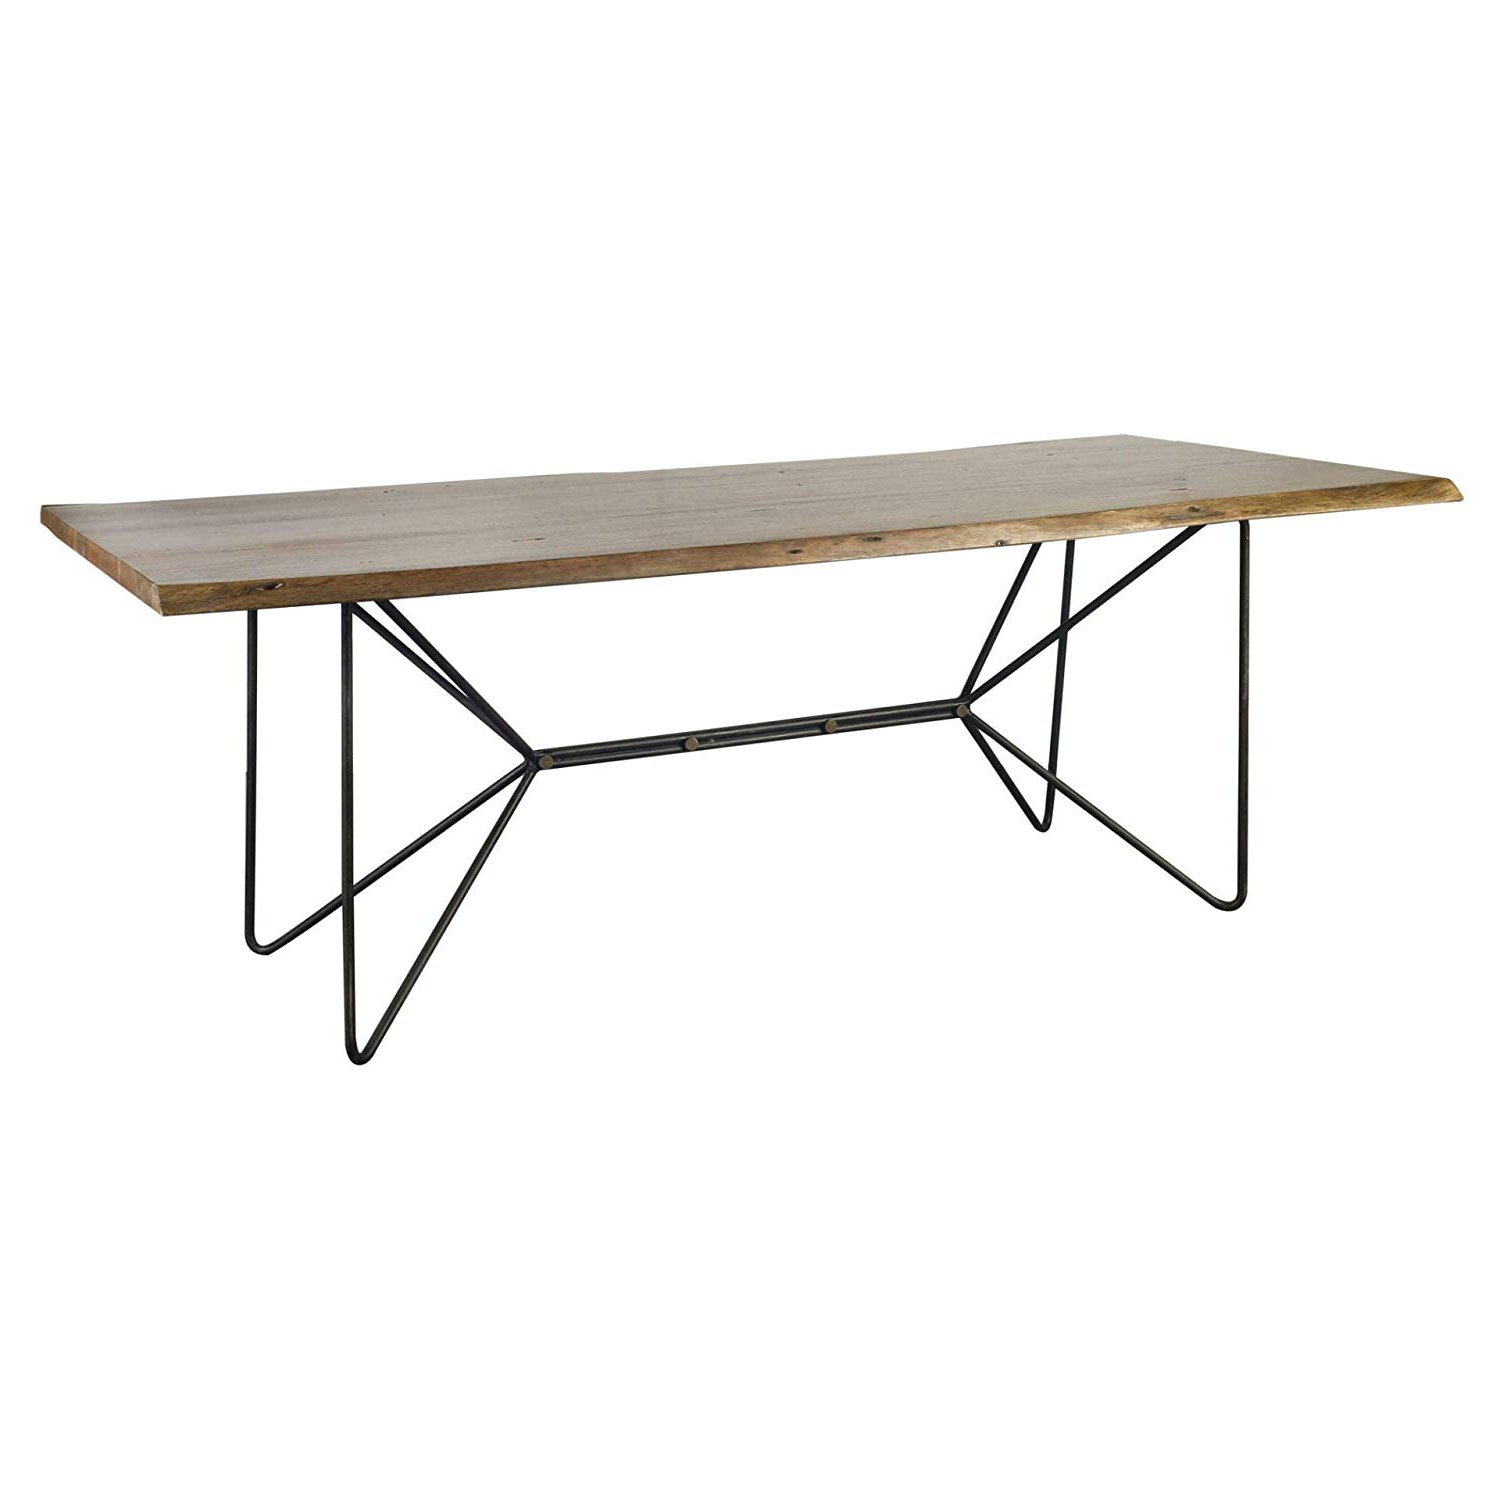 "Acacia Wood Dining Tables With Sheet Metal Base Pertaining To Most Up To Date Amazon: Mercana 67623 Ab Dining Table, 84"" X 38"" X (View 24 of 30)"